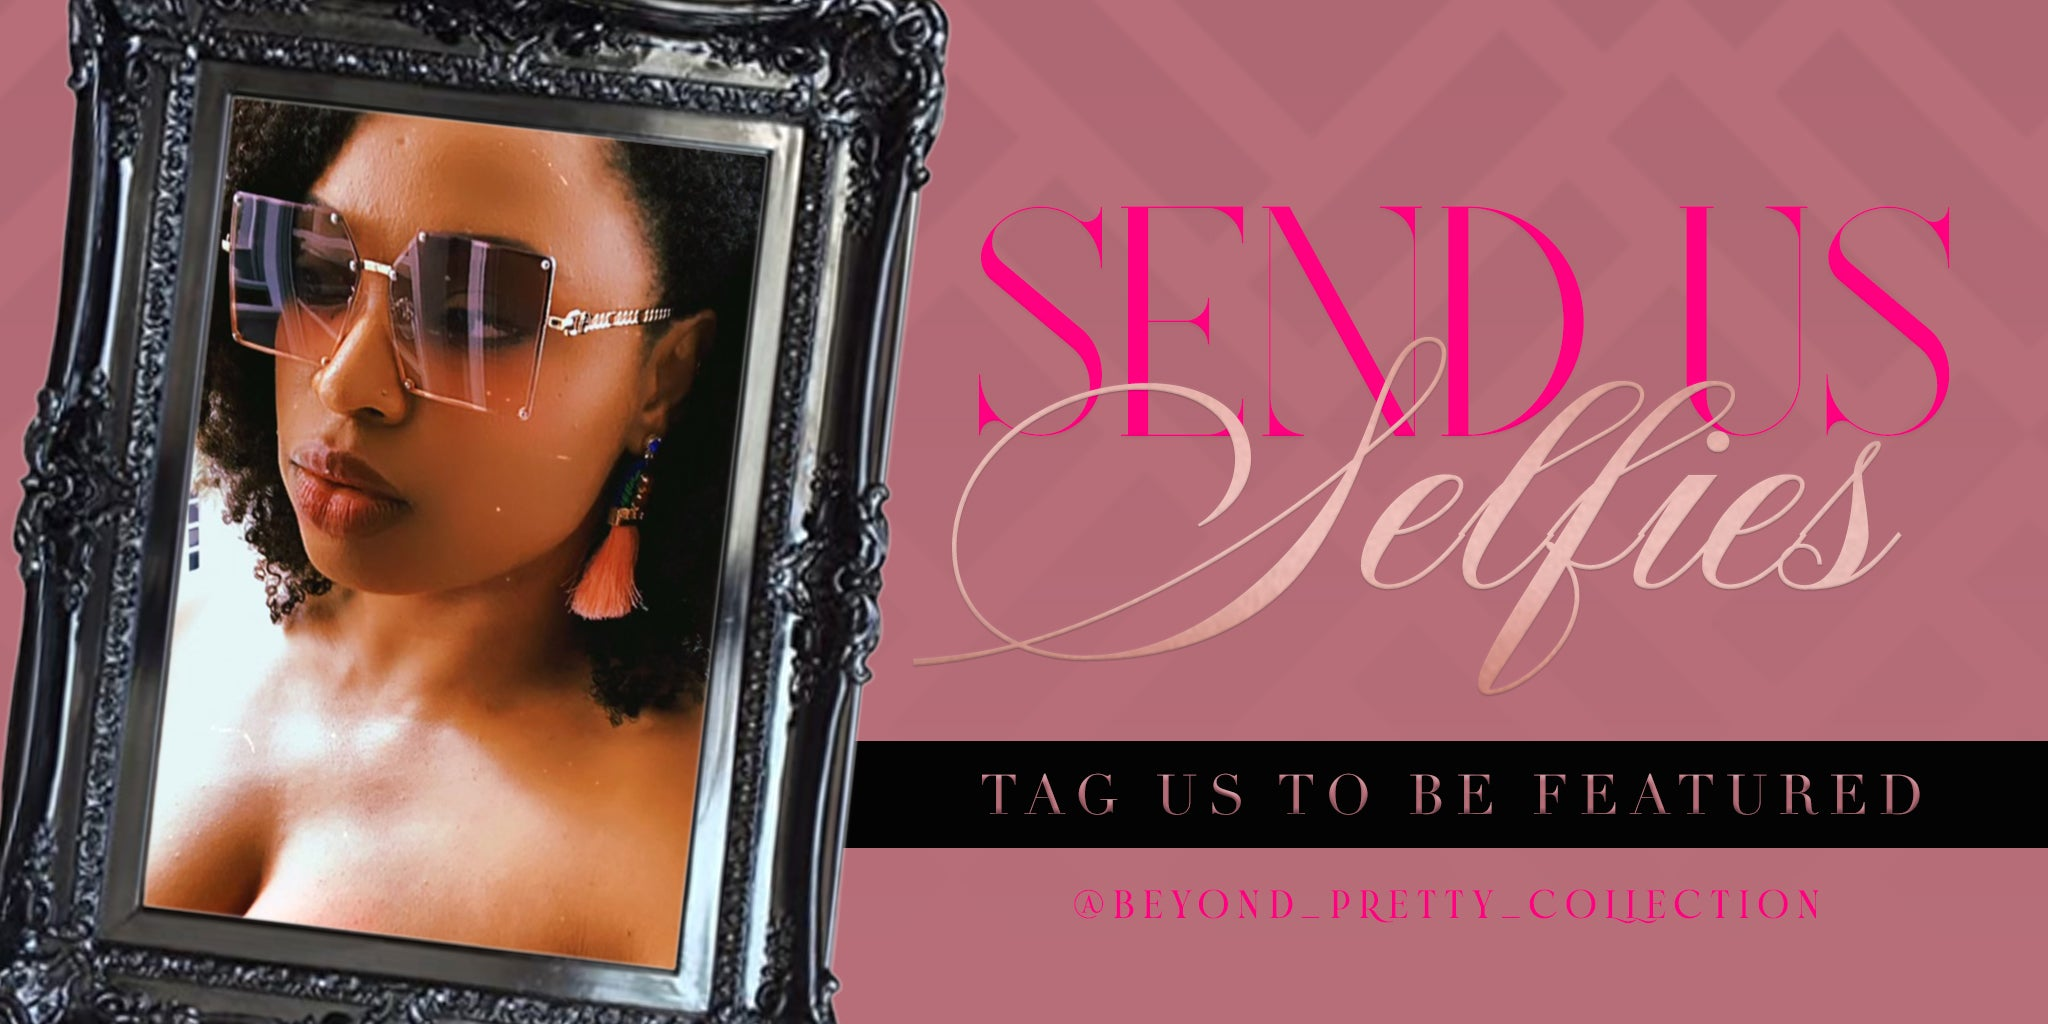 Beyond Pretty Collection